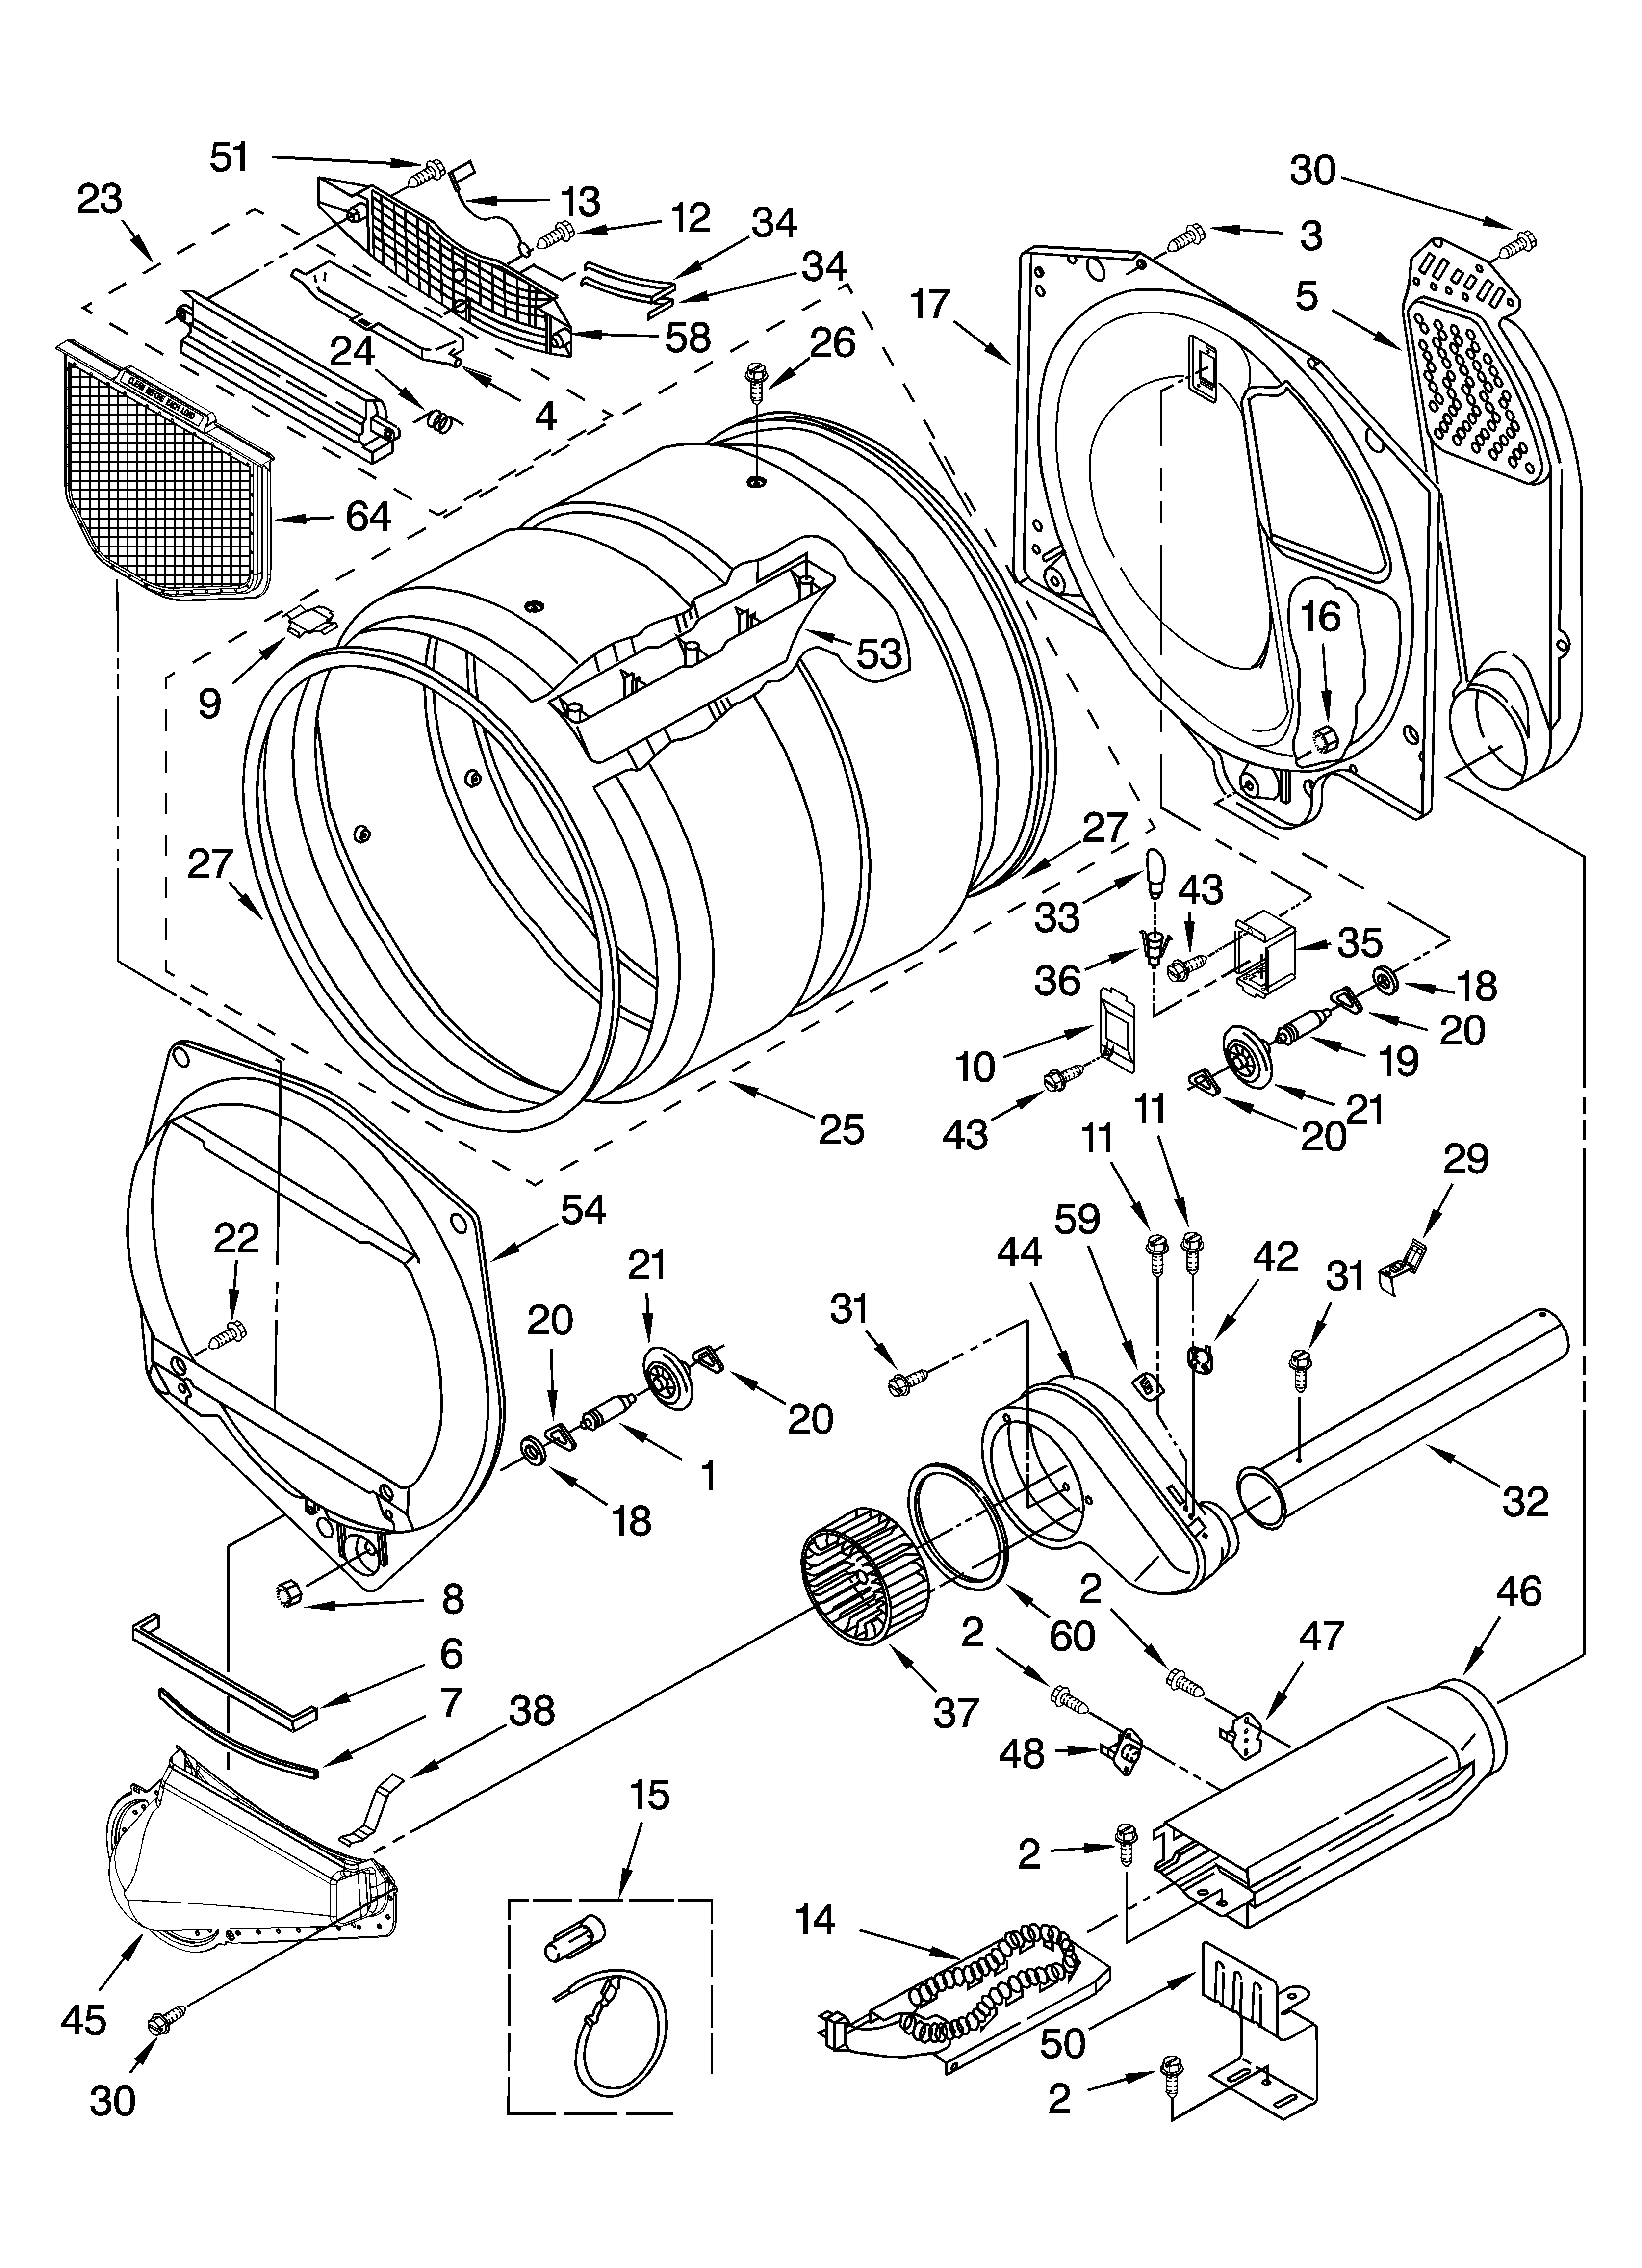 Kenmore 11066926501 bulkhead parts, optional parts (not included) diagram